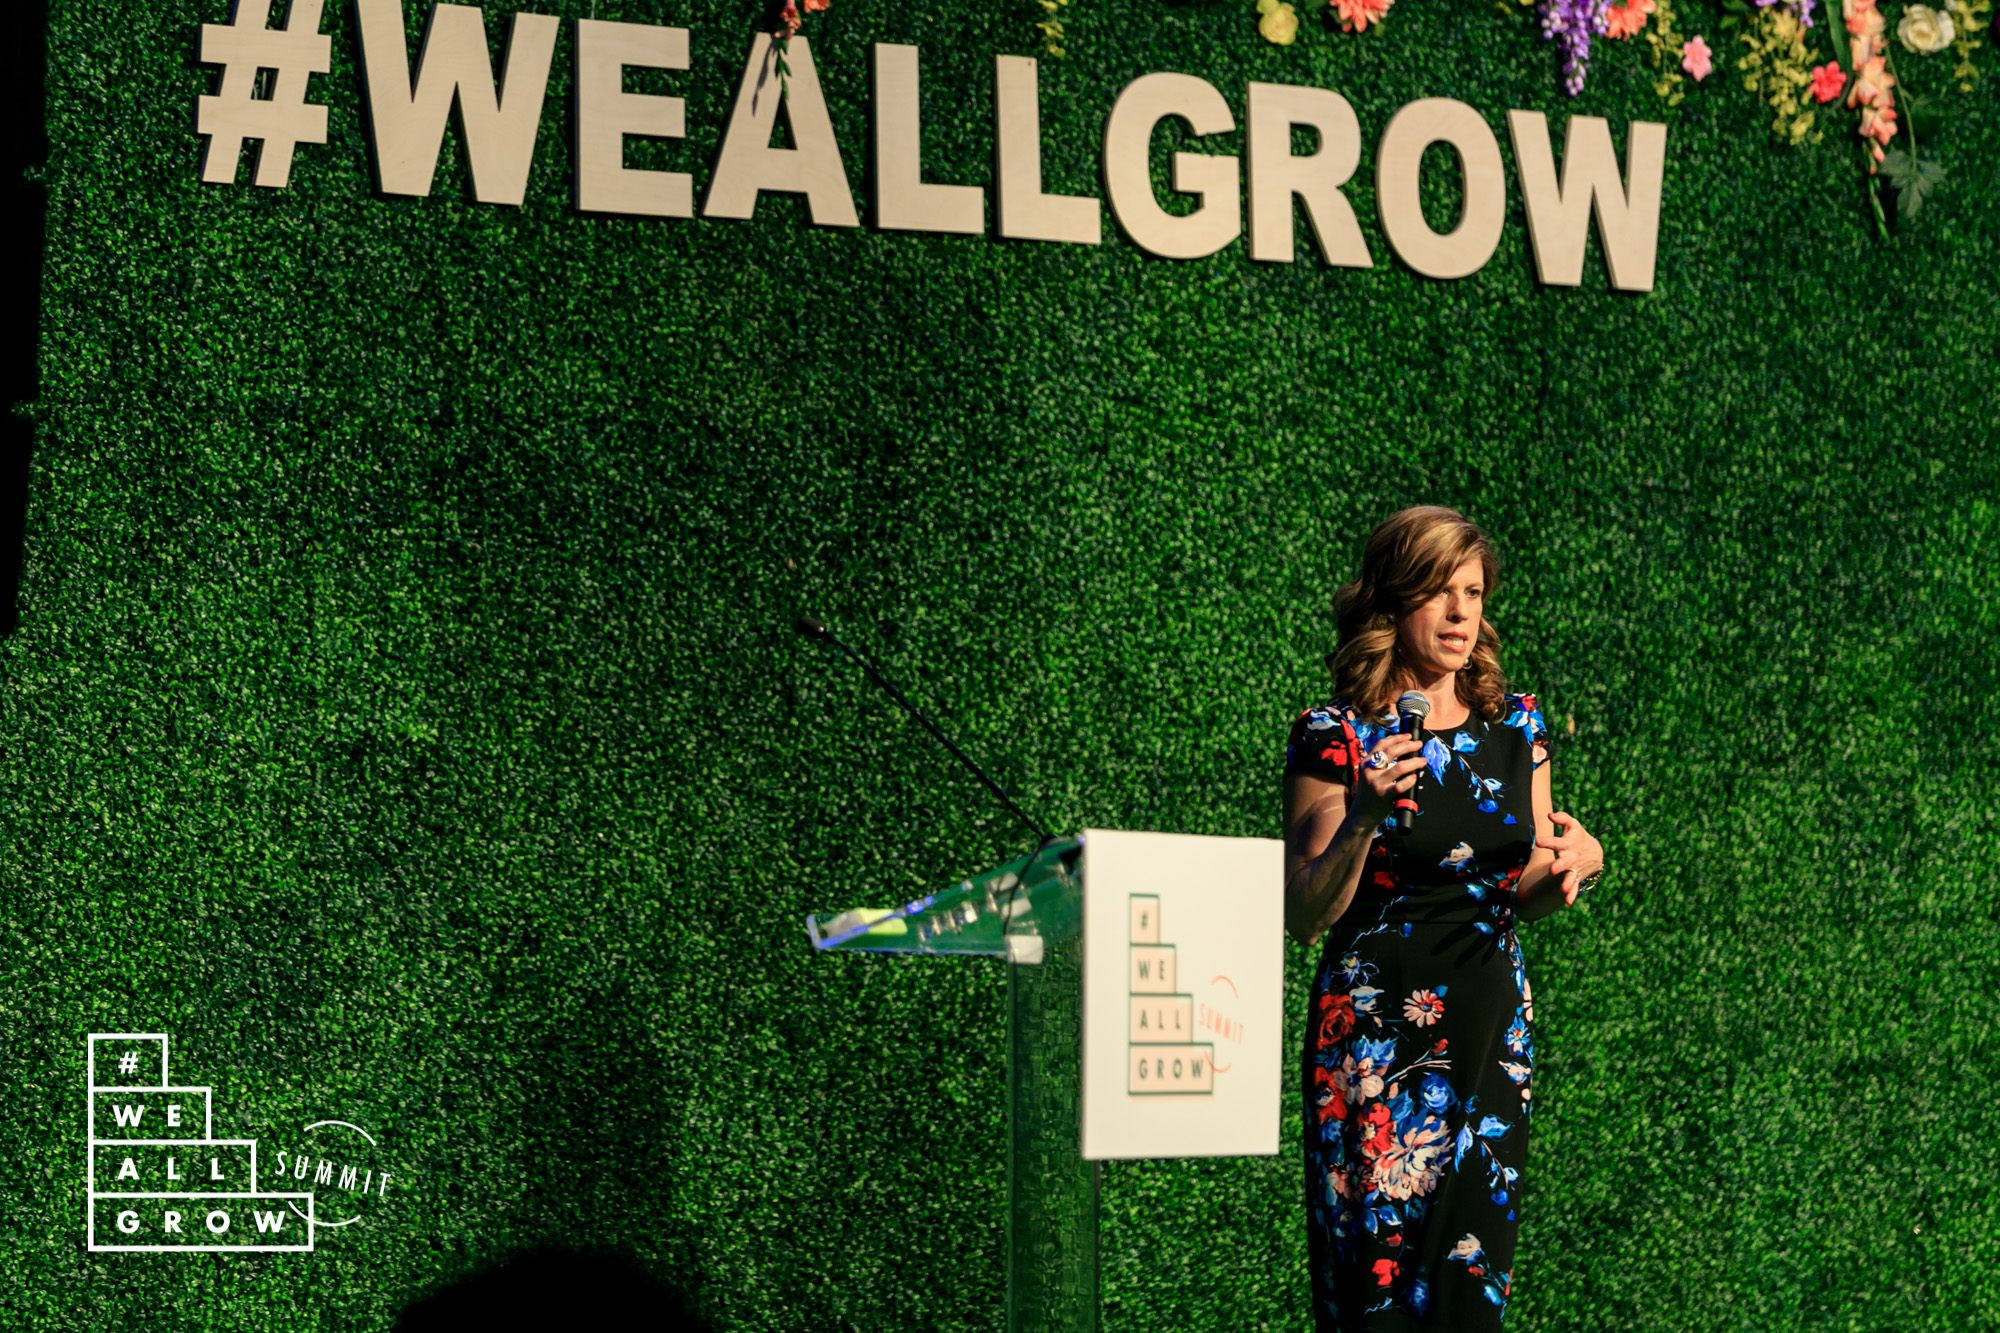 Yvonne Condes at the We All Grow Summit (photo courtesy of Robson Muzel and #WeAllGrow Summit)